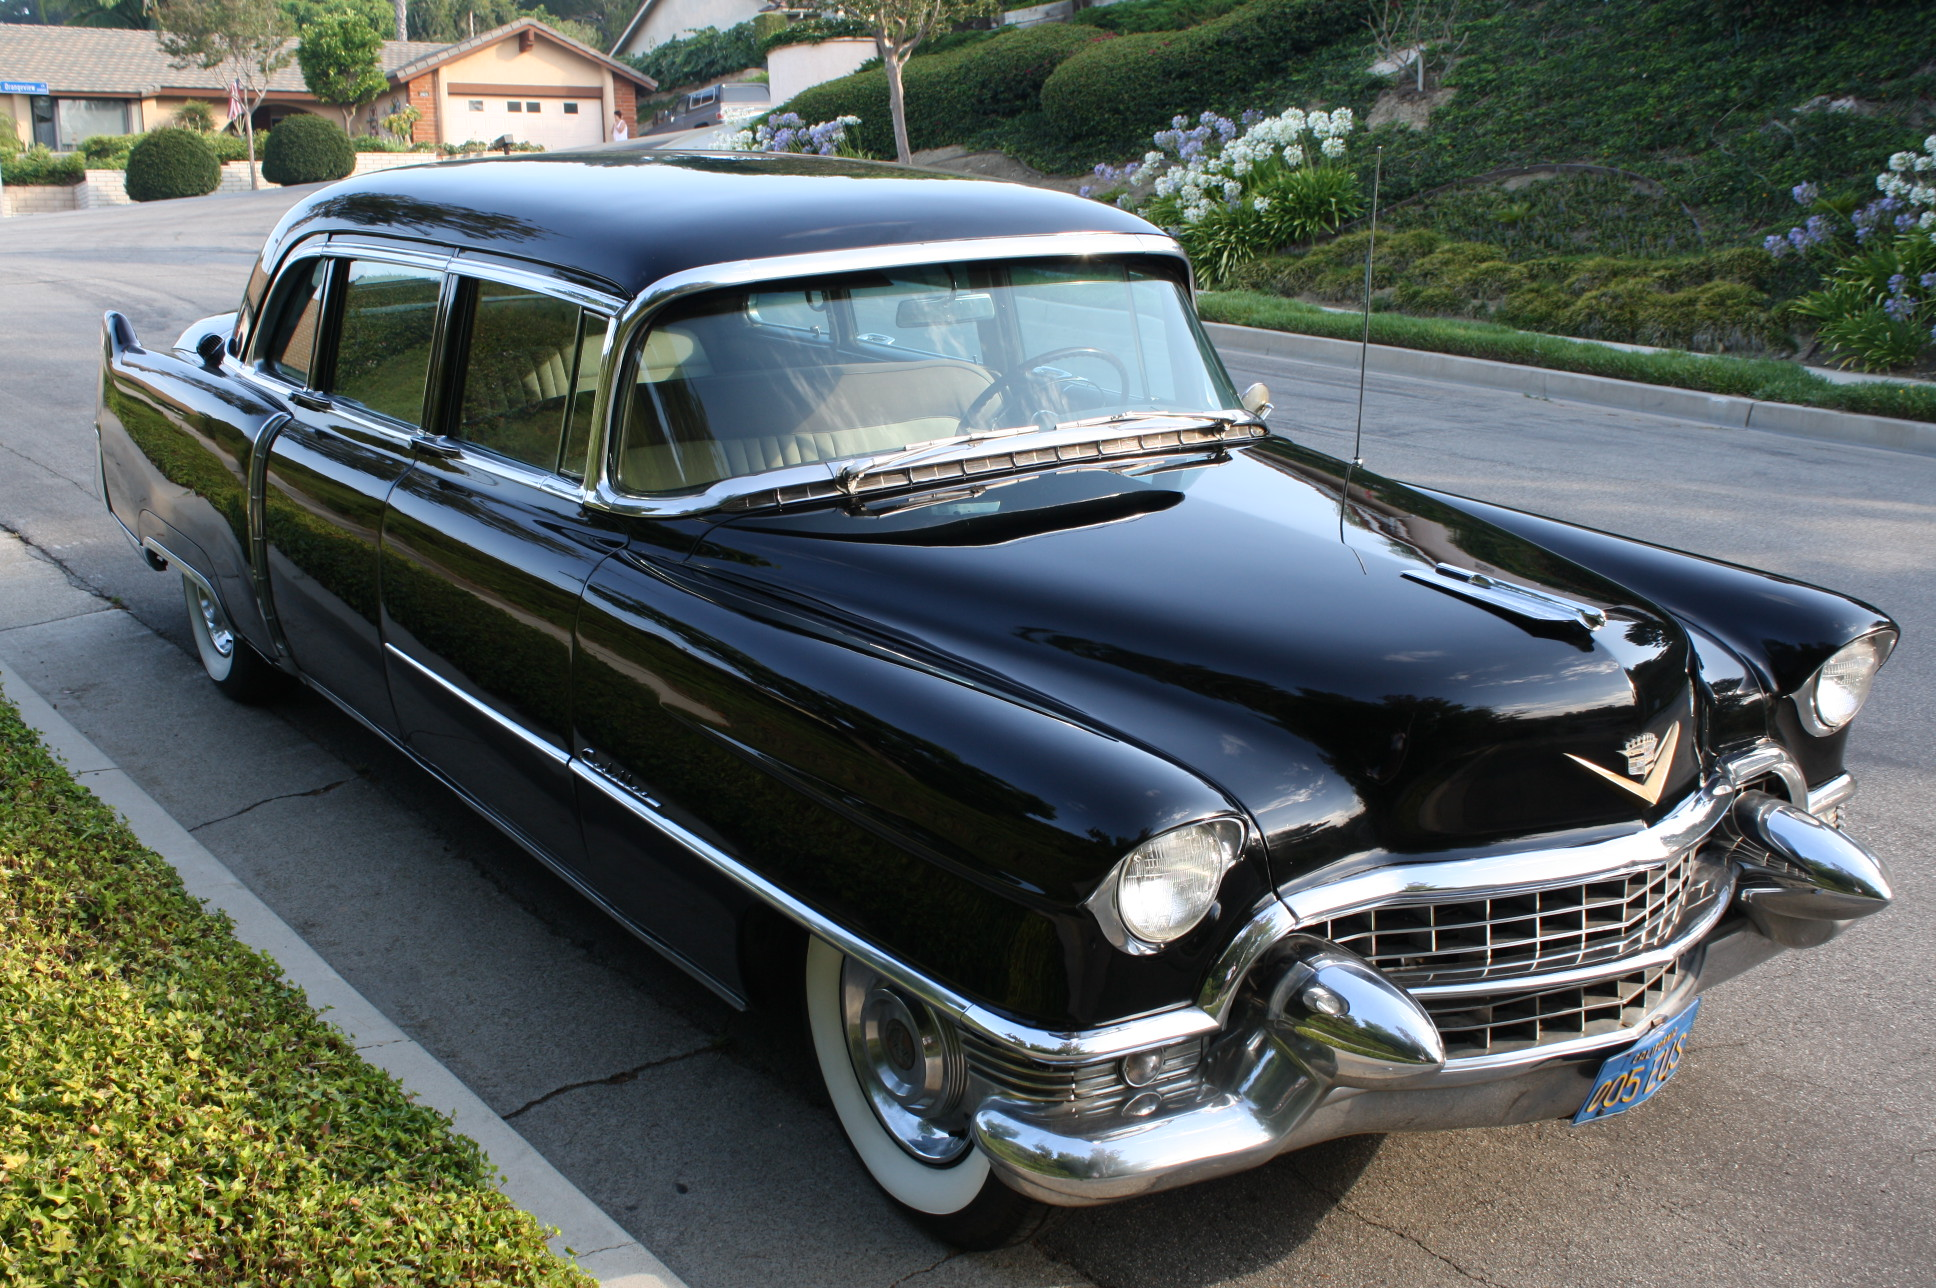 1955 Cadillac 75 8 Passenger Sedan | The Vault Classic Cars